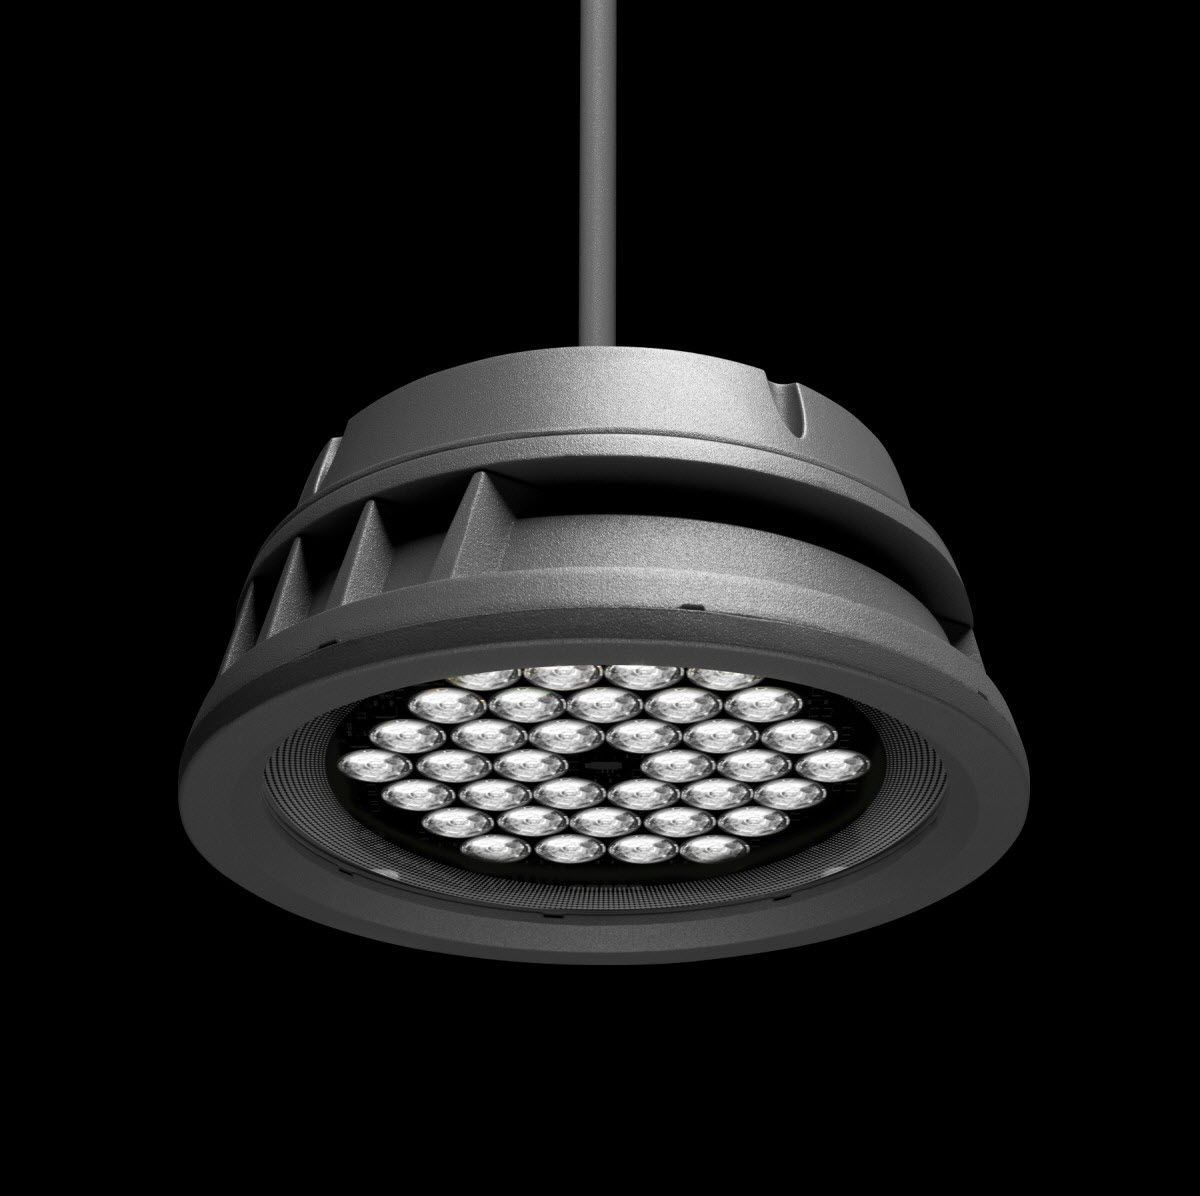 Hanging Light Fixture / Led / Round / Outdoor – Lumenbeam Large With Round Outdoor Hanging Lights (View 12 of 15)